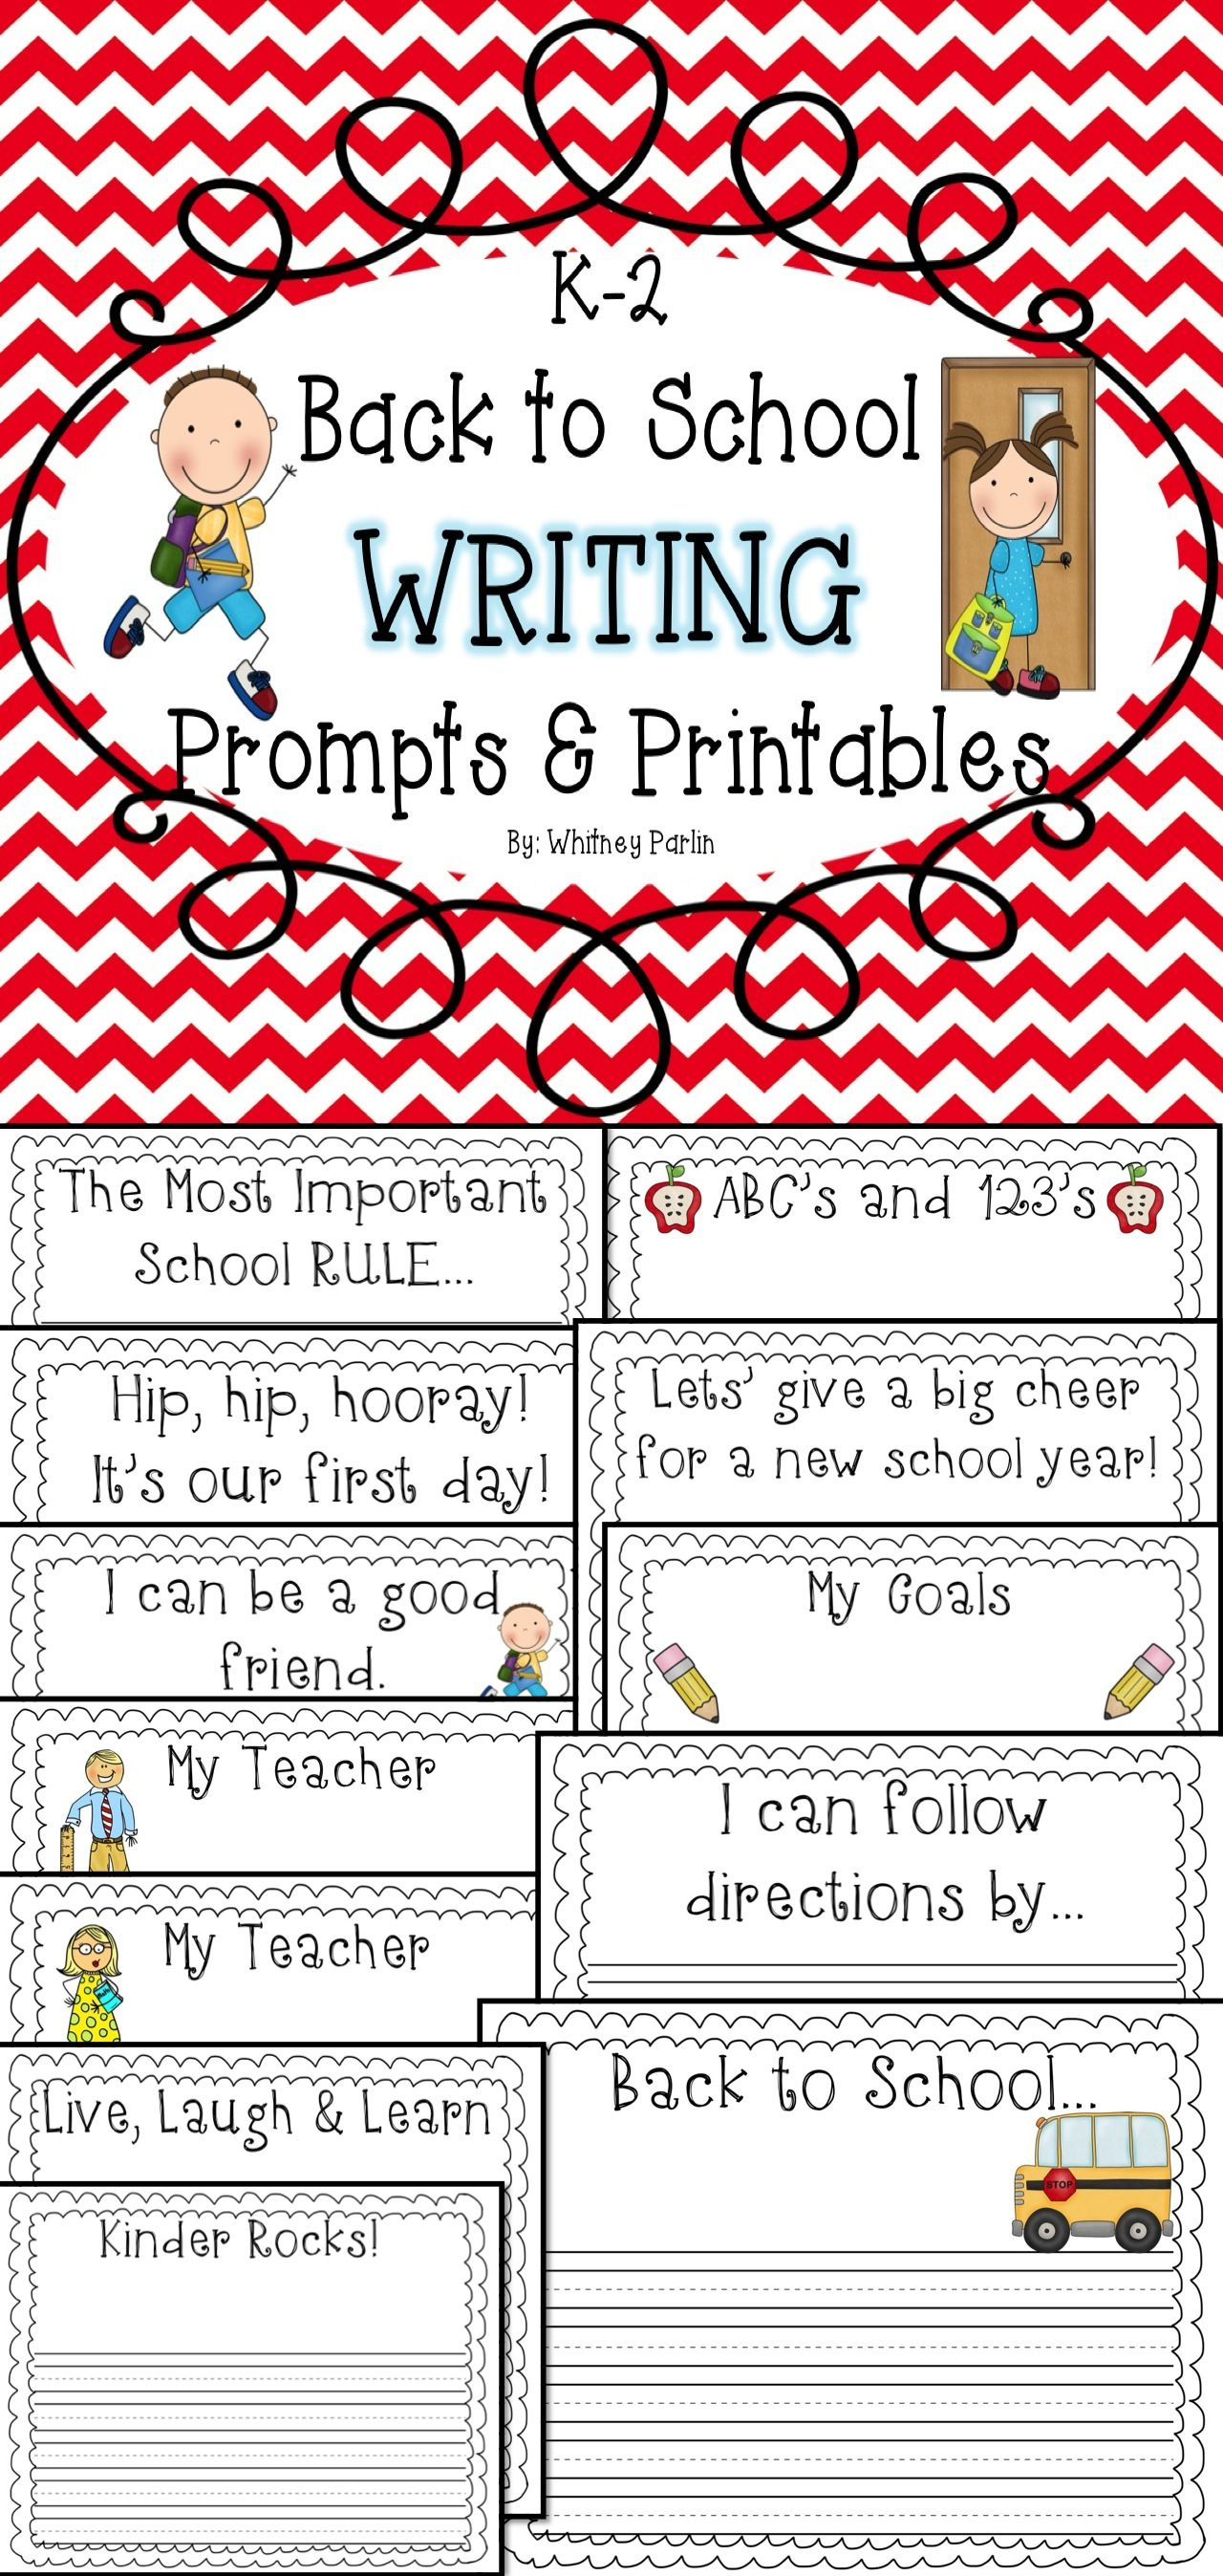 Free For A Limited Time Back To School Writing Prompts And Printables